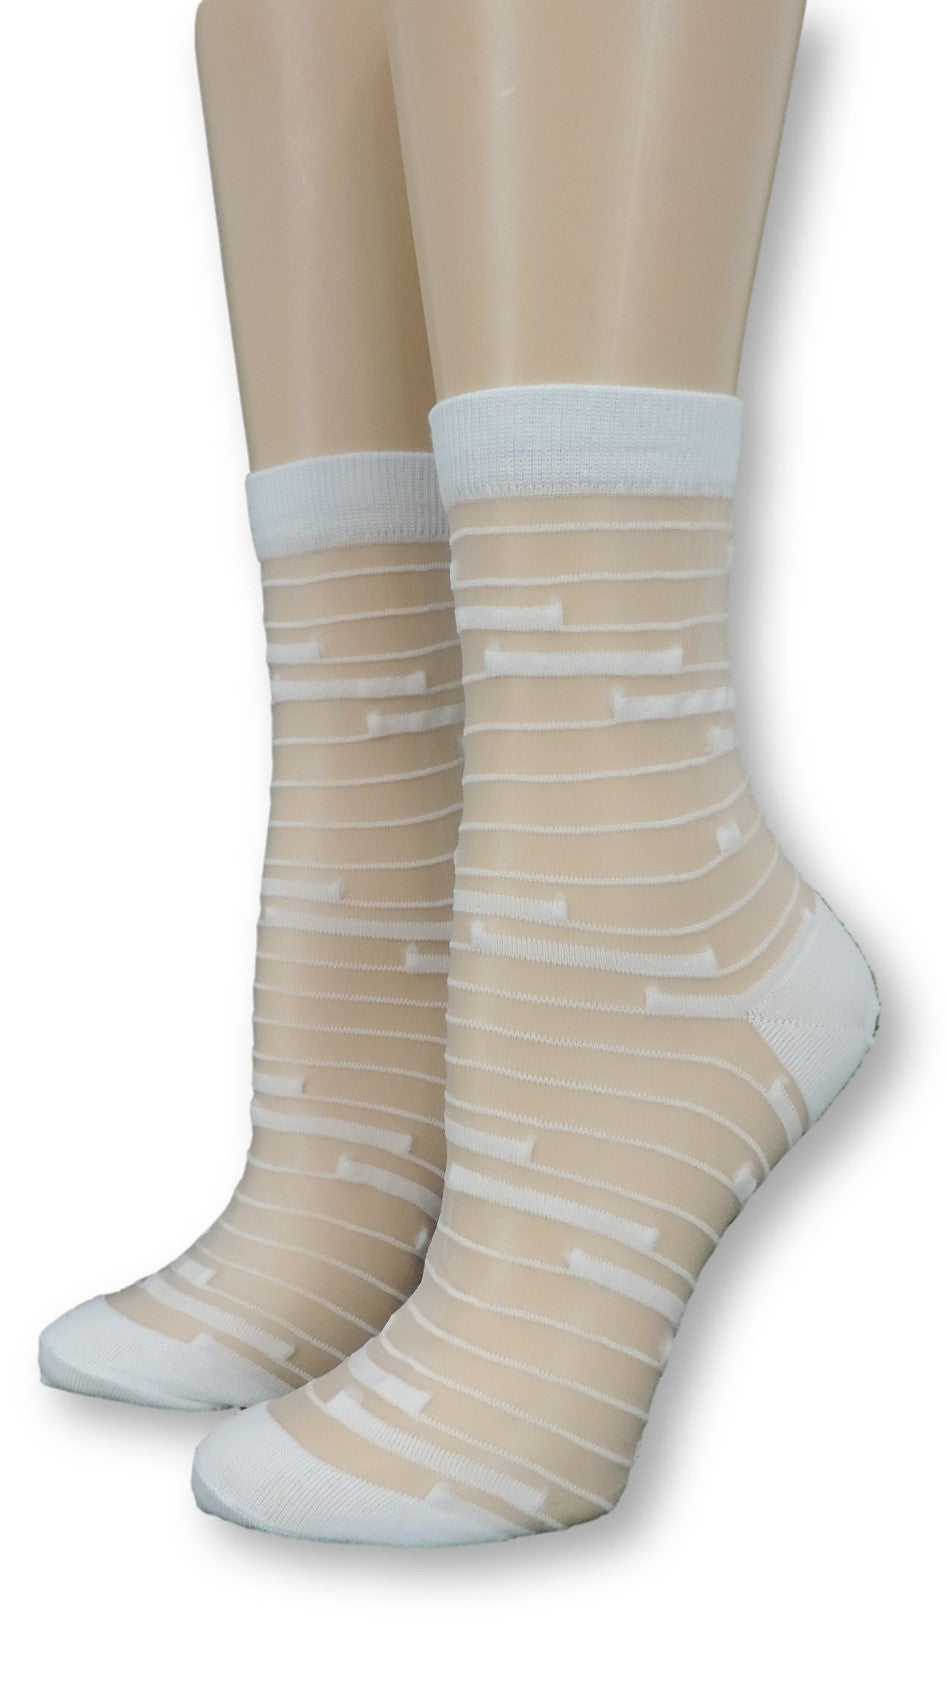 Vivid White Sheer Socks - Global Trendz Fashion®